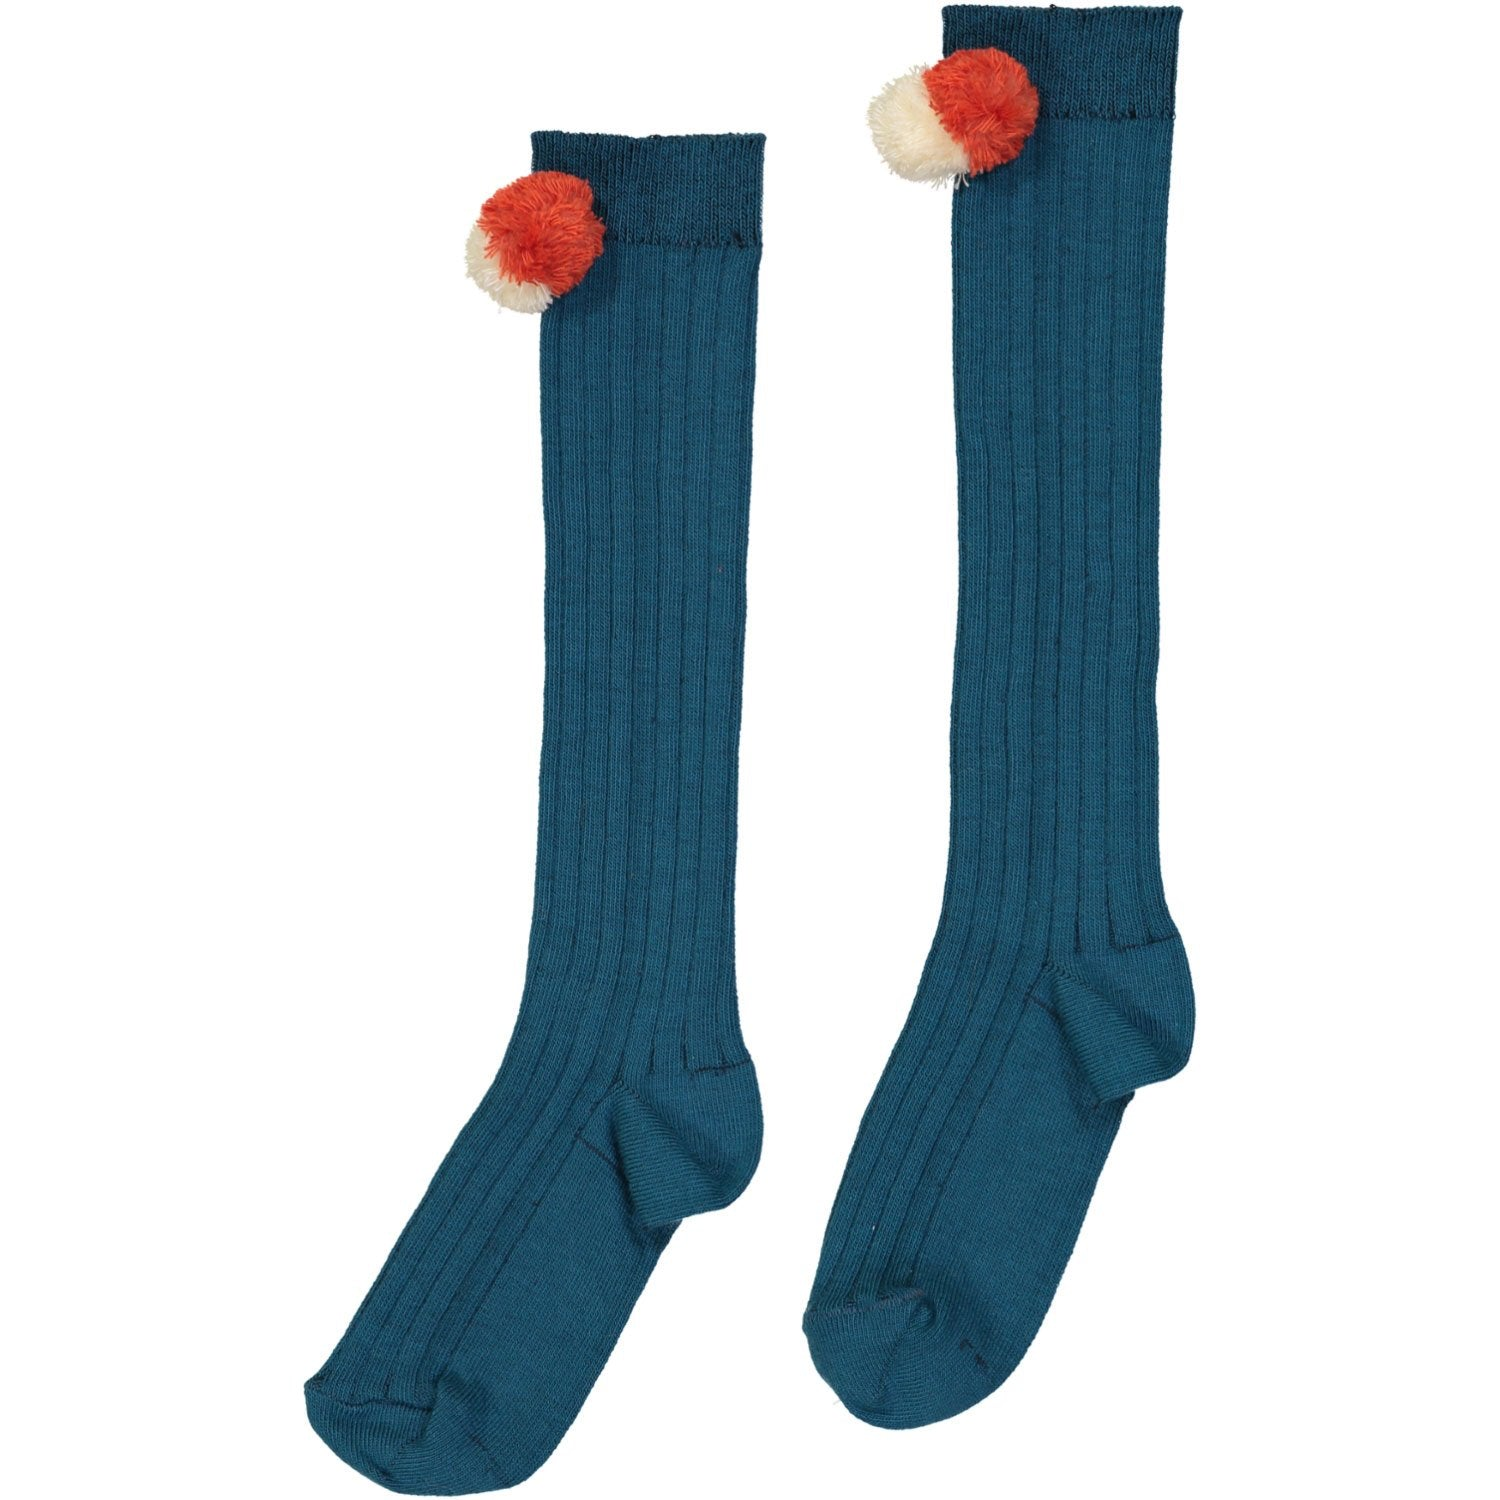 93a31154c hello simone pom pom socks aqua - kodomo tights socks - children s clothing  in boston